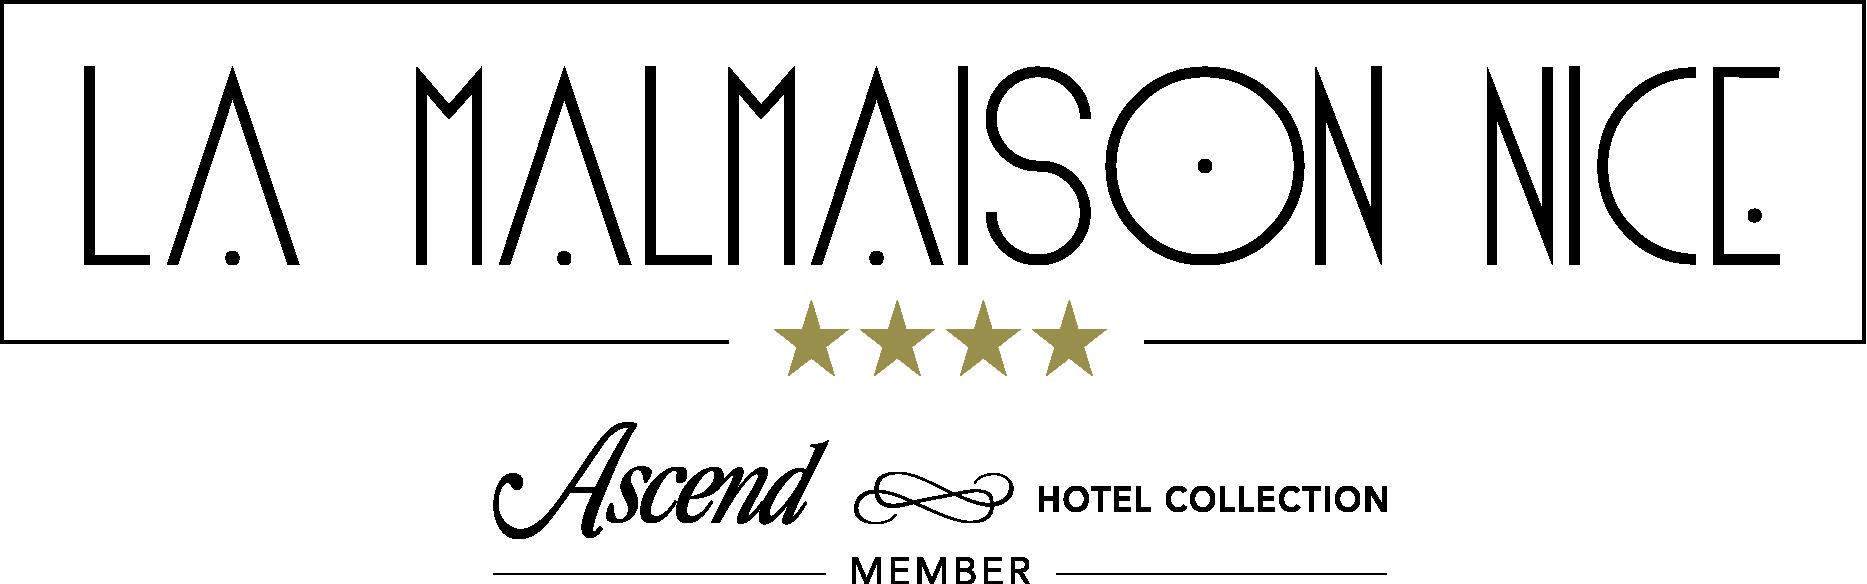 La Malmaison, Ascend Hotel Collection